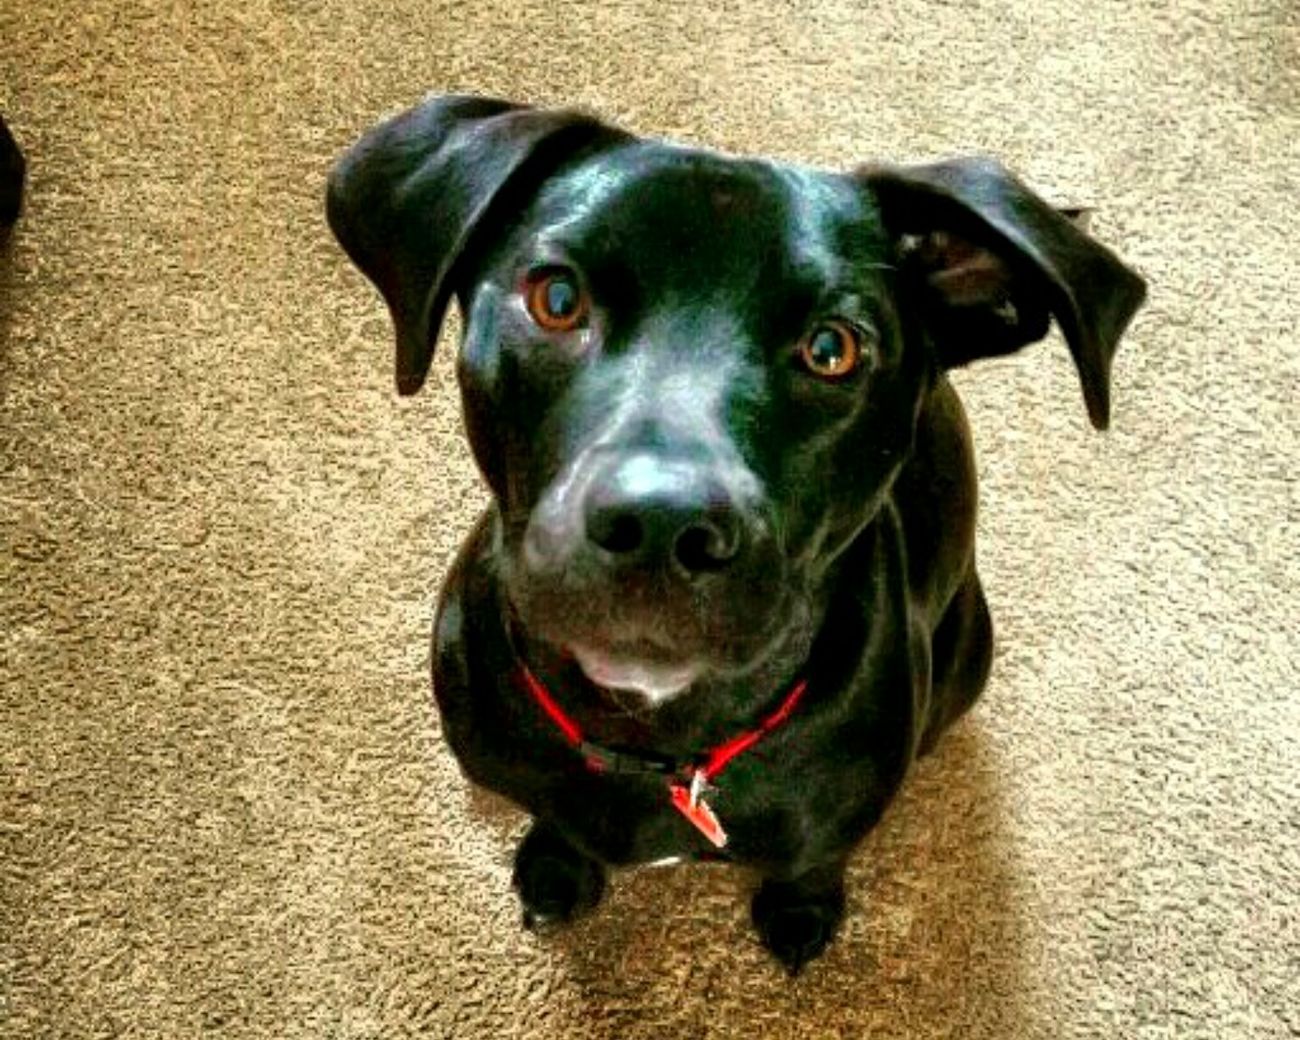 Looking At Camera Pets Dog Domestic Animals Black ColorPortrait Black Labrador Friends ❤ Puppy Love One Animal Animal Themes Mammal No People Day Close-up Dogs Outdoors Buddiesforlife Snugglebuddy